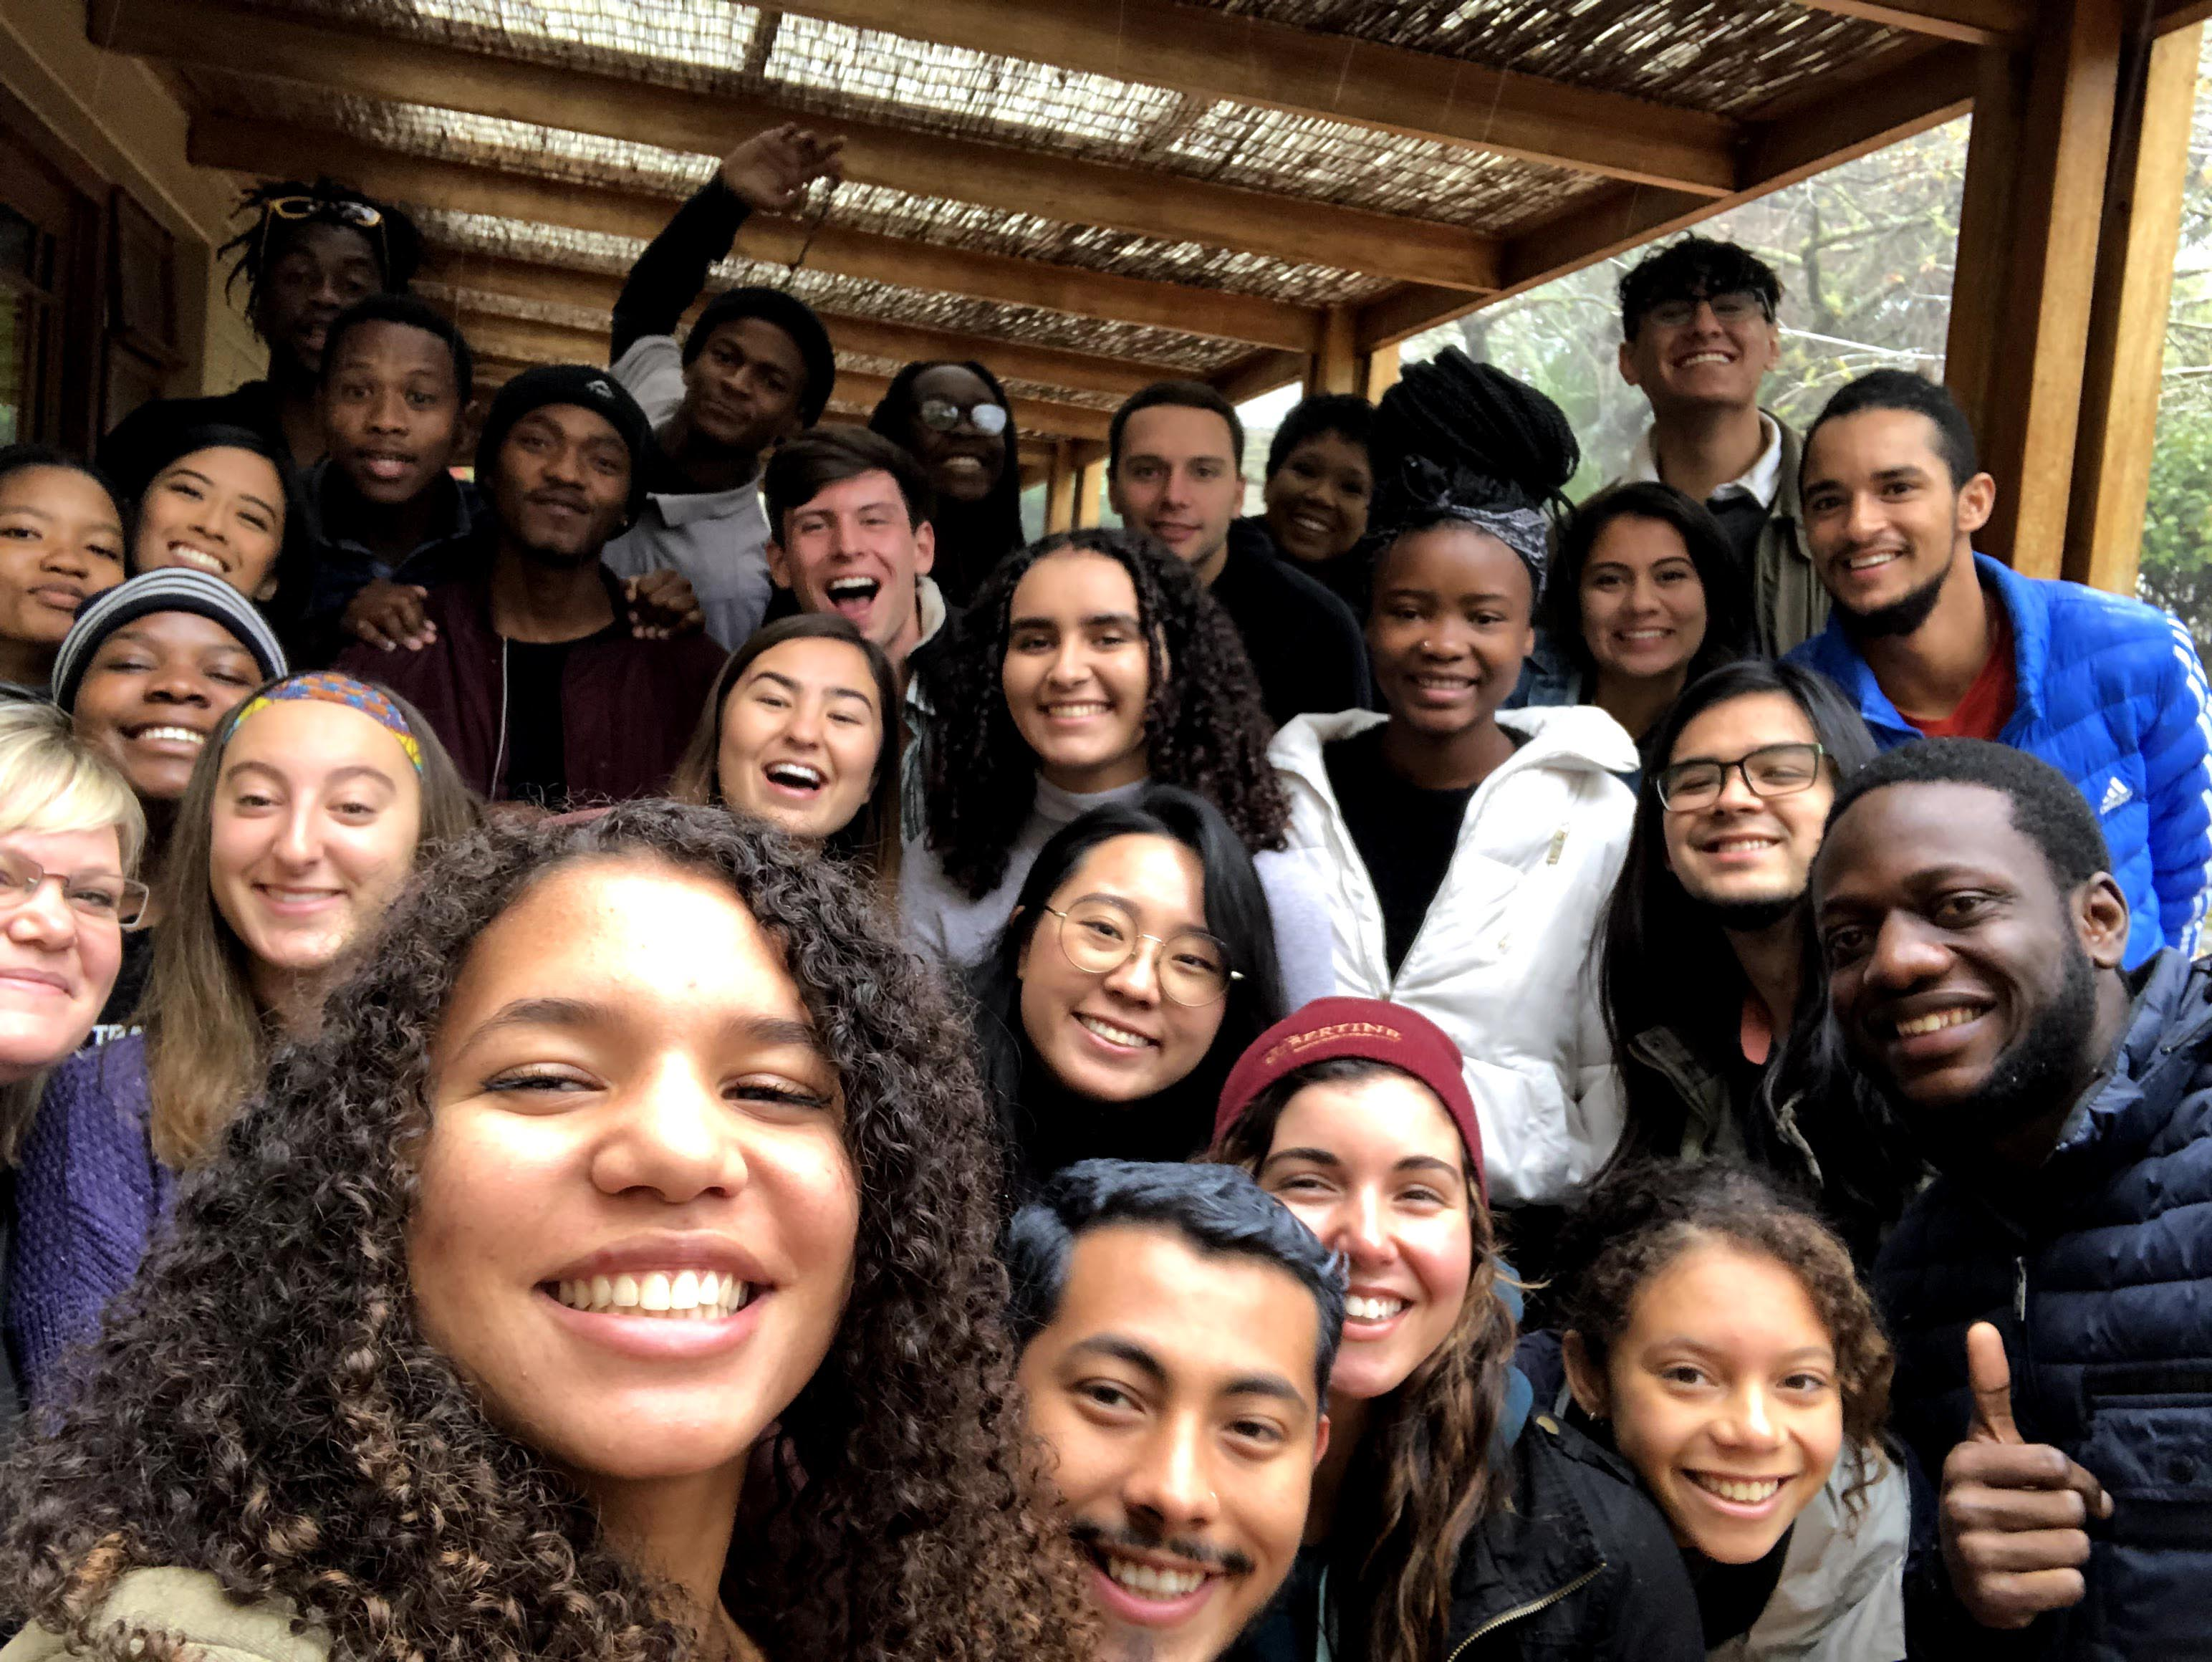 Cal Poly students, including Aurabel de Guzman Sandoc and Eliana Hollinger, pose for a group photo in Cape Town, South Africa